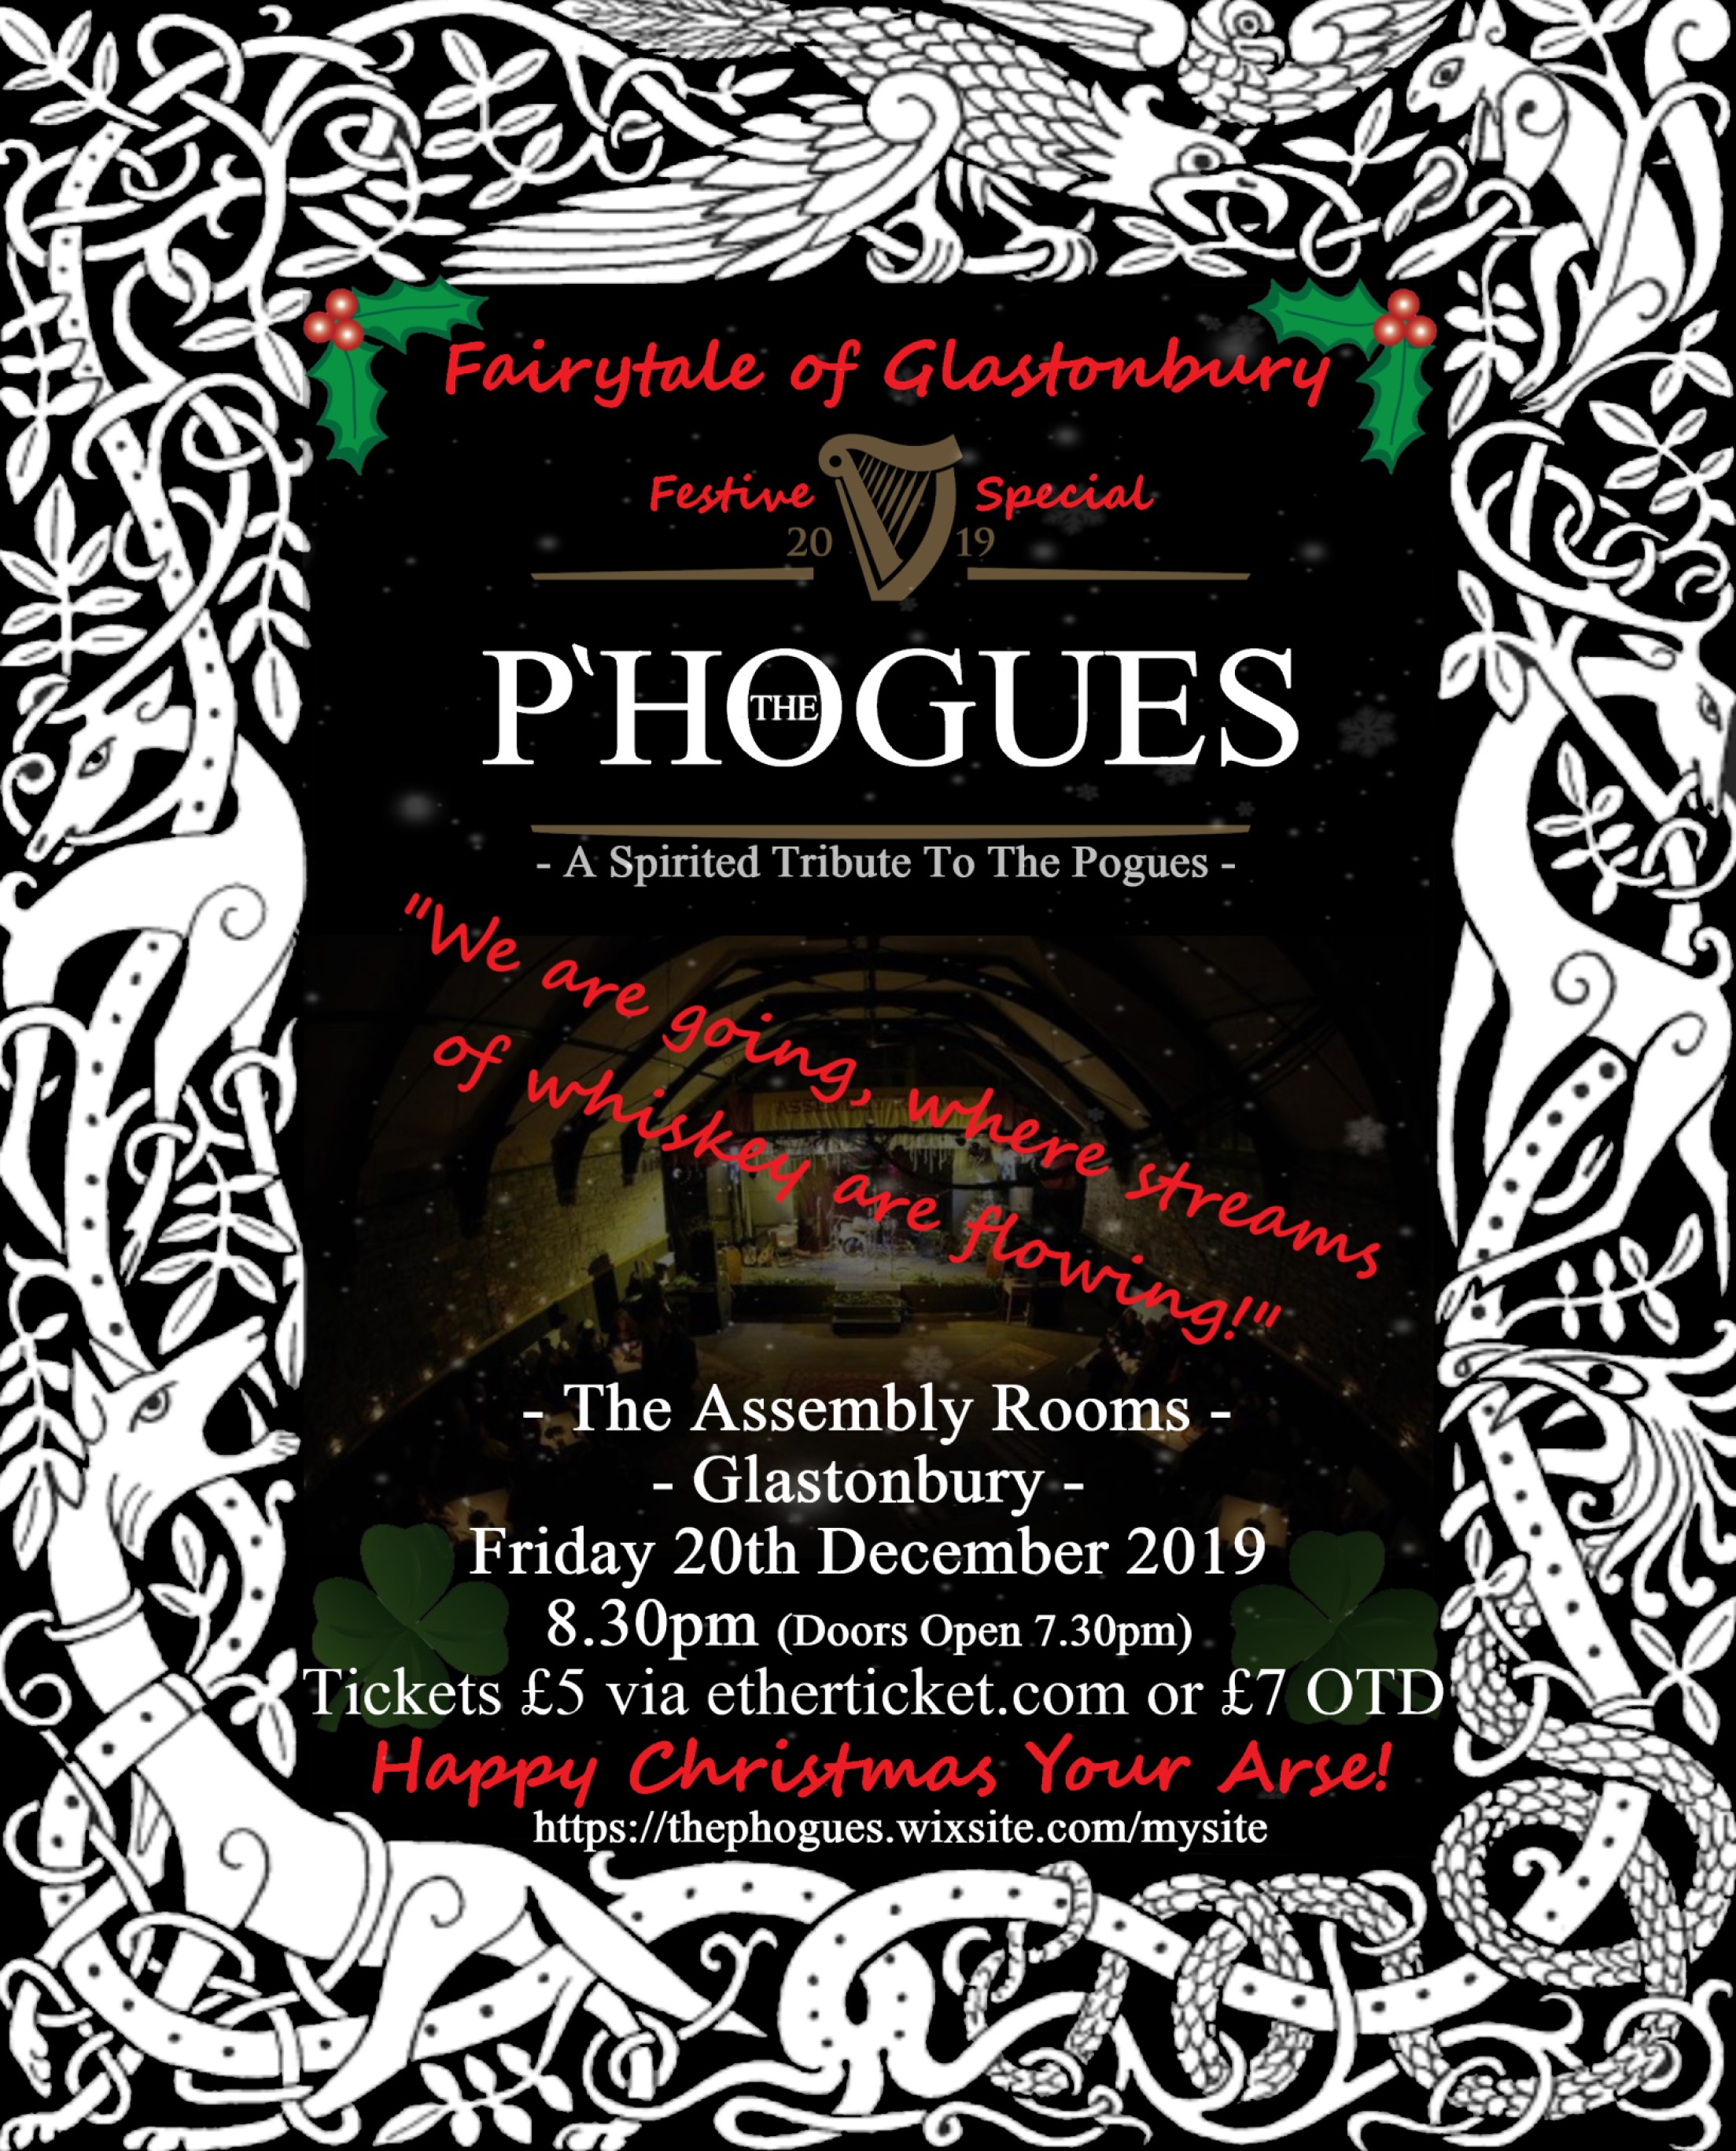 Event Poster For THE P'HOGUES - A Spirited Tribute to The Pogues - Fairytale of Glastonbury - Festive Special